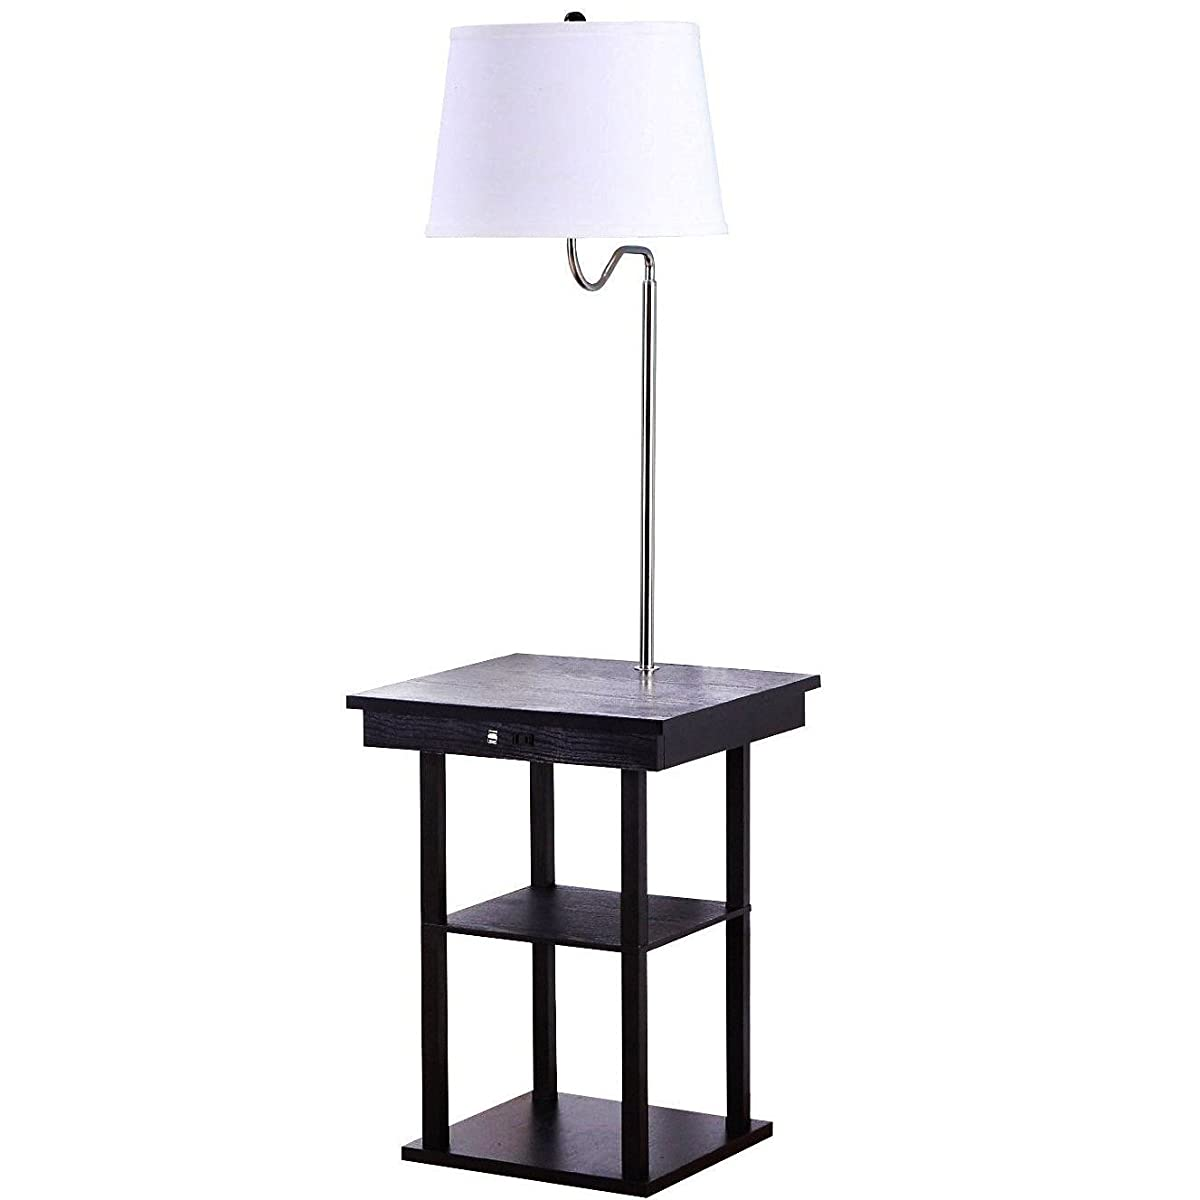 End Table With Built In Lamp - Brightech madison led floor lamp with built in black table and shelf multi purpose